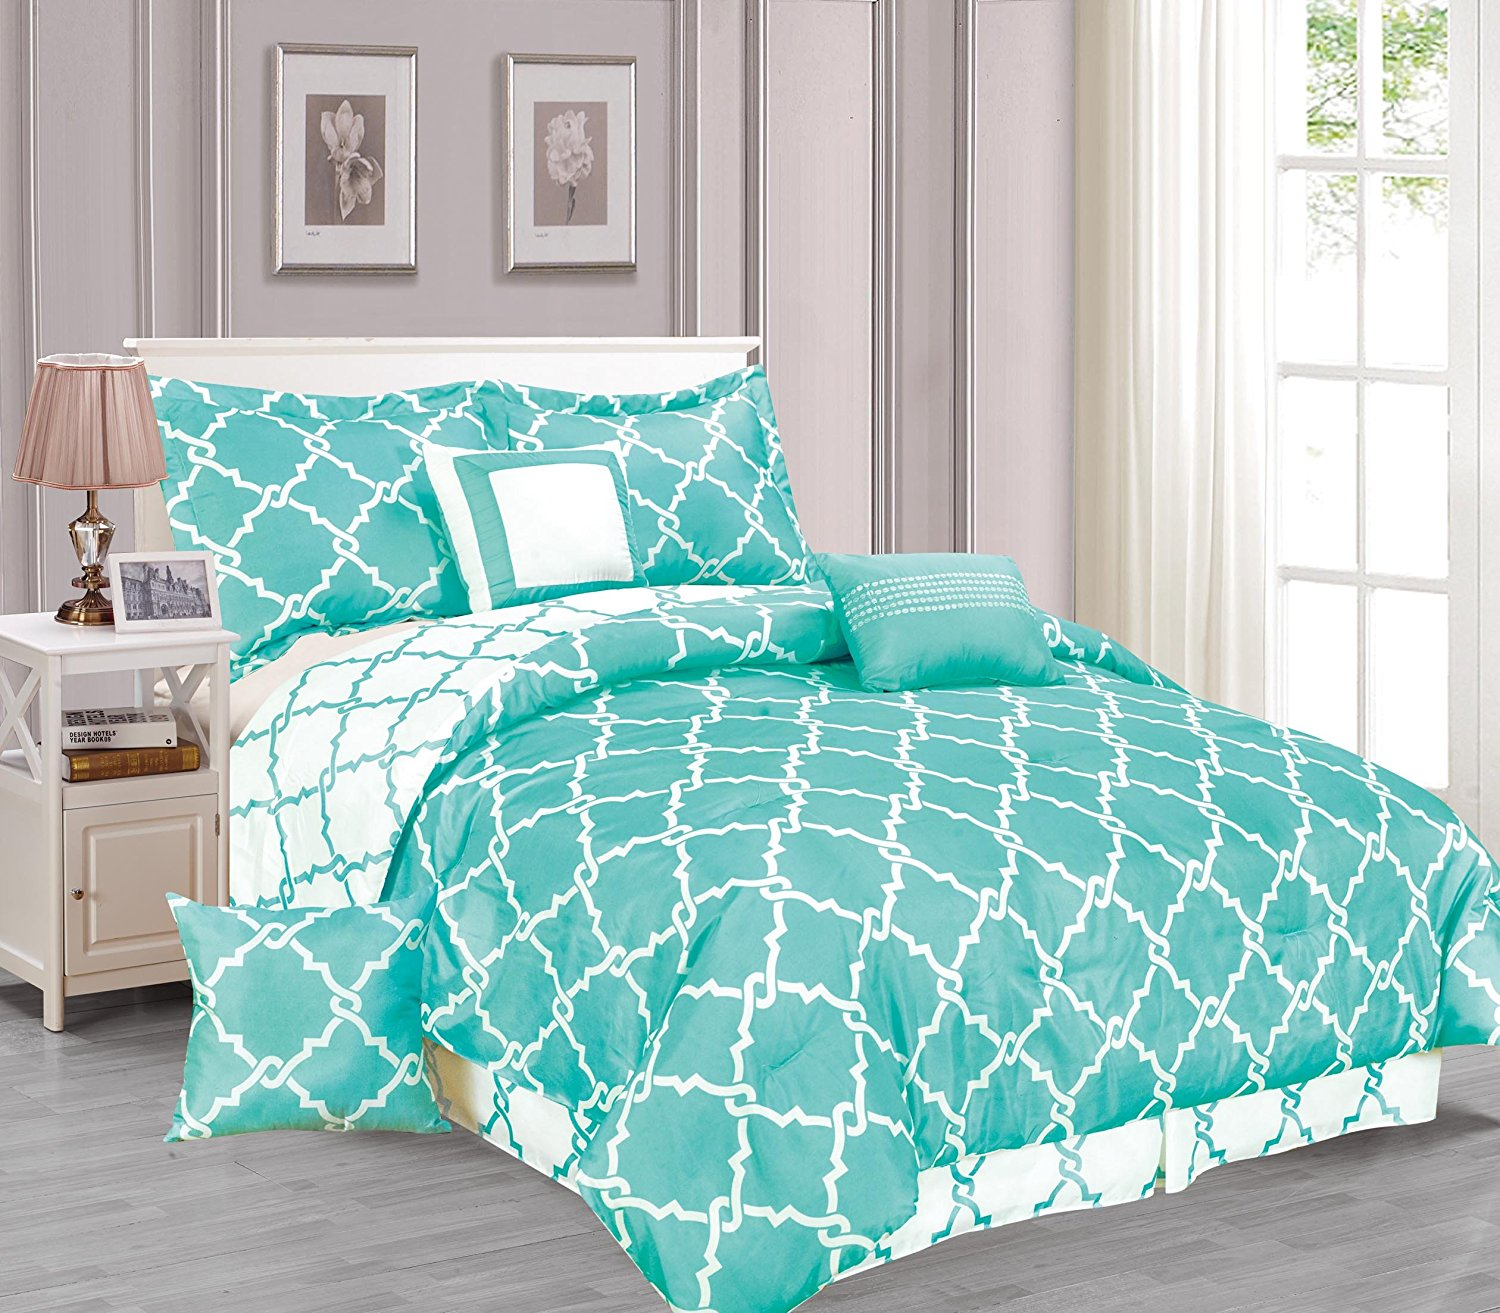 Galaxy 7 Piece Comforter Set Reversible Soft Oversized Bedding Turquoise  Blue King Size